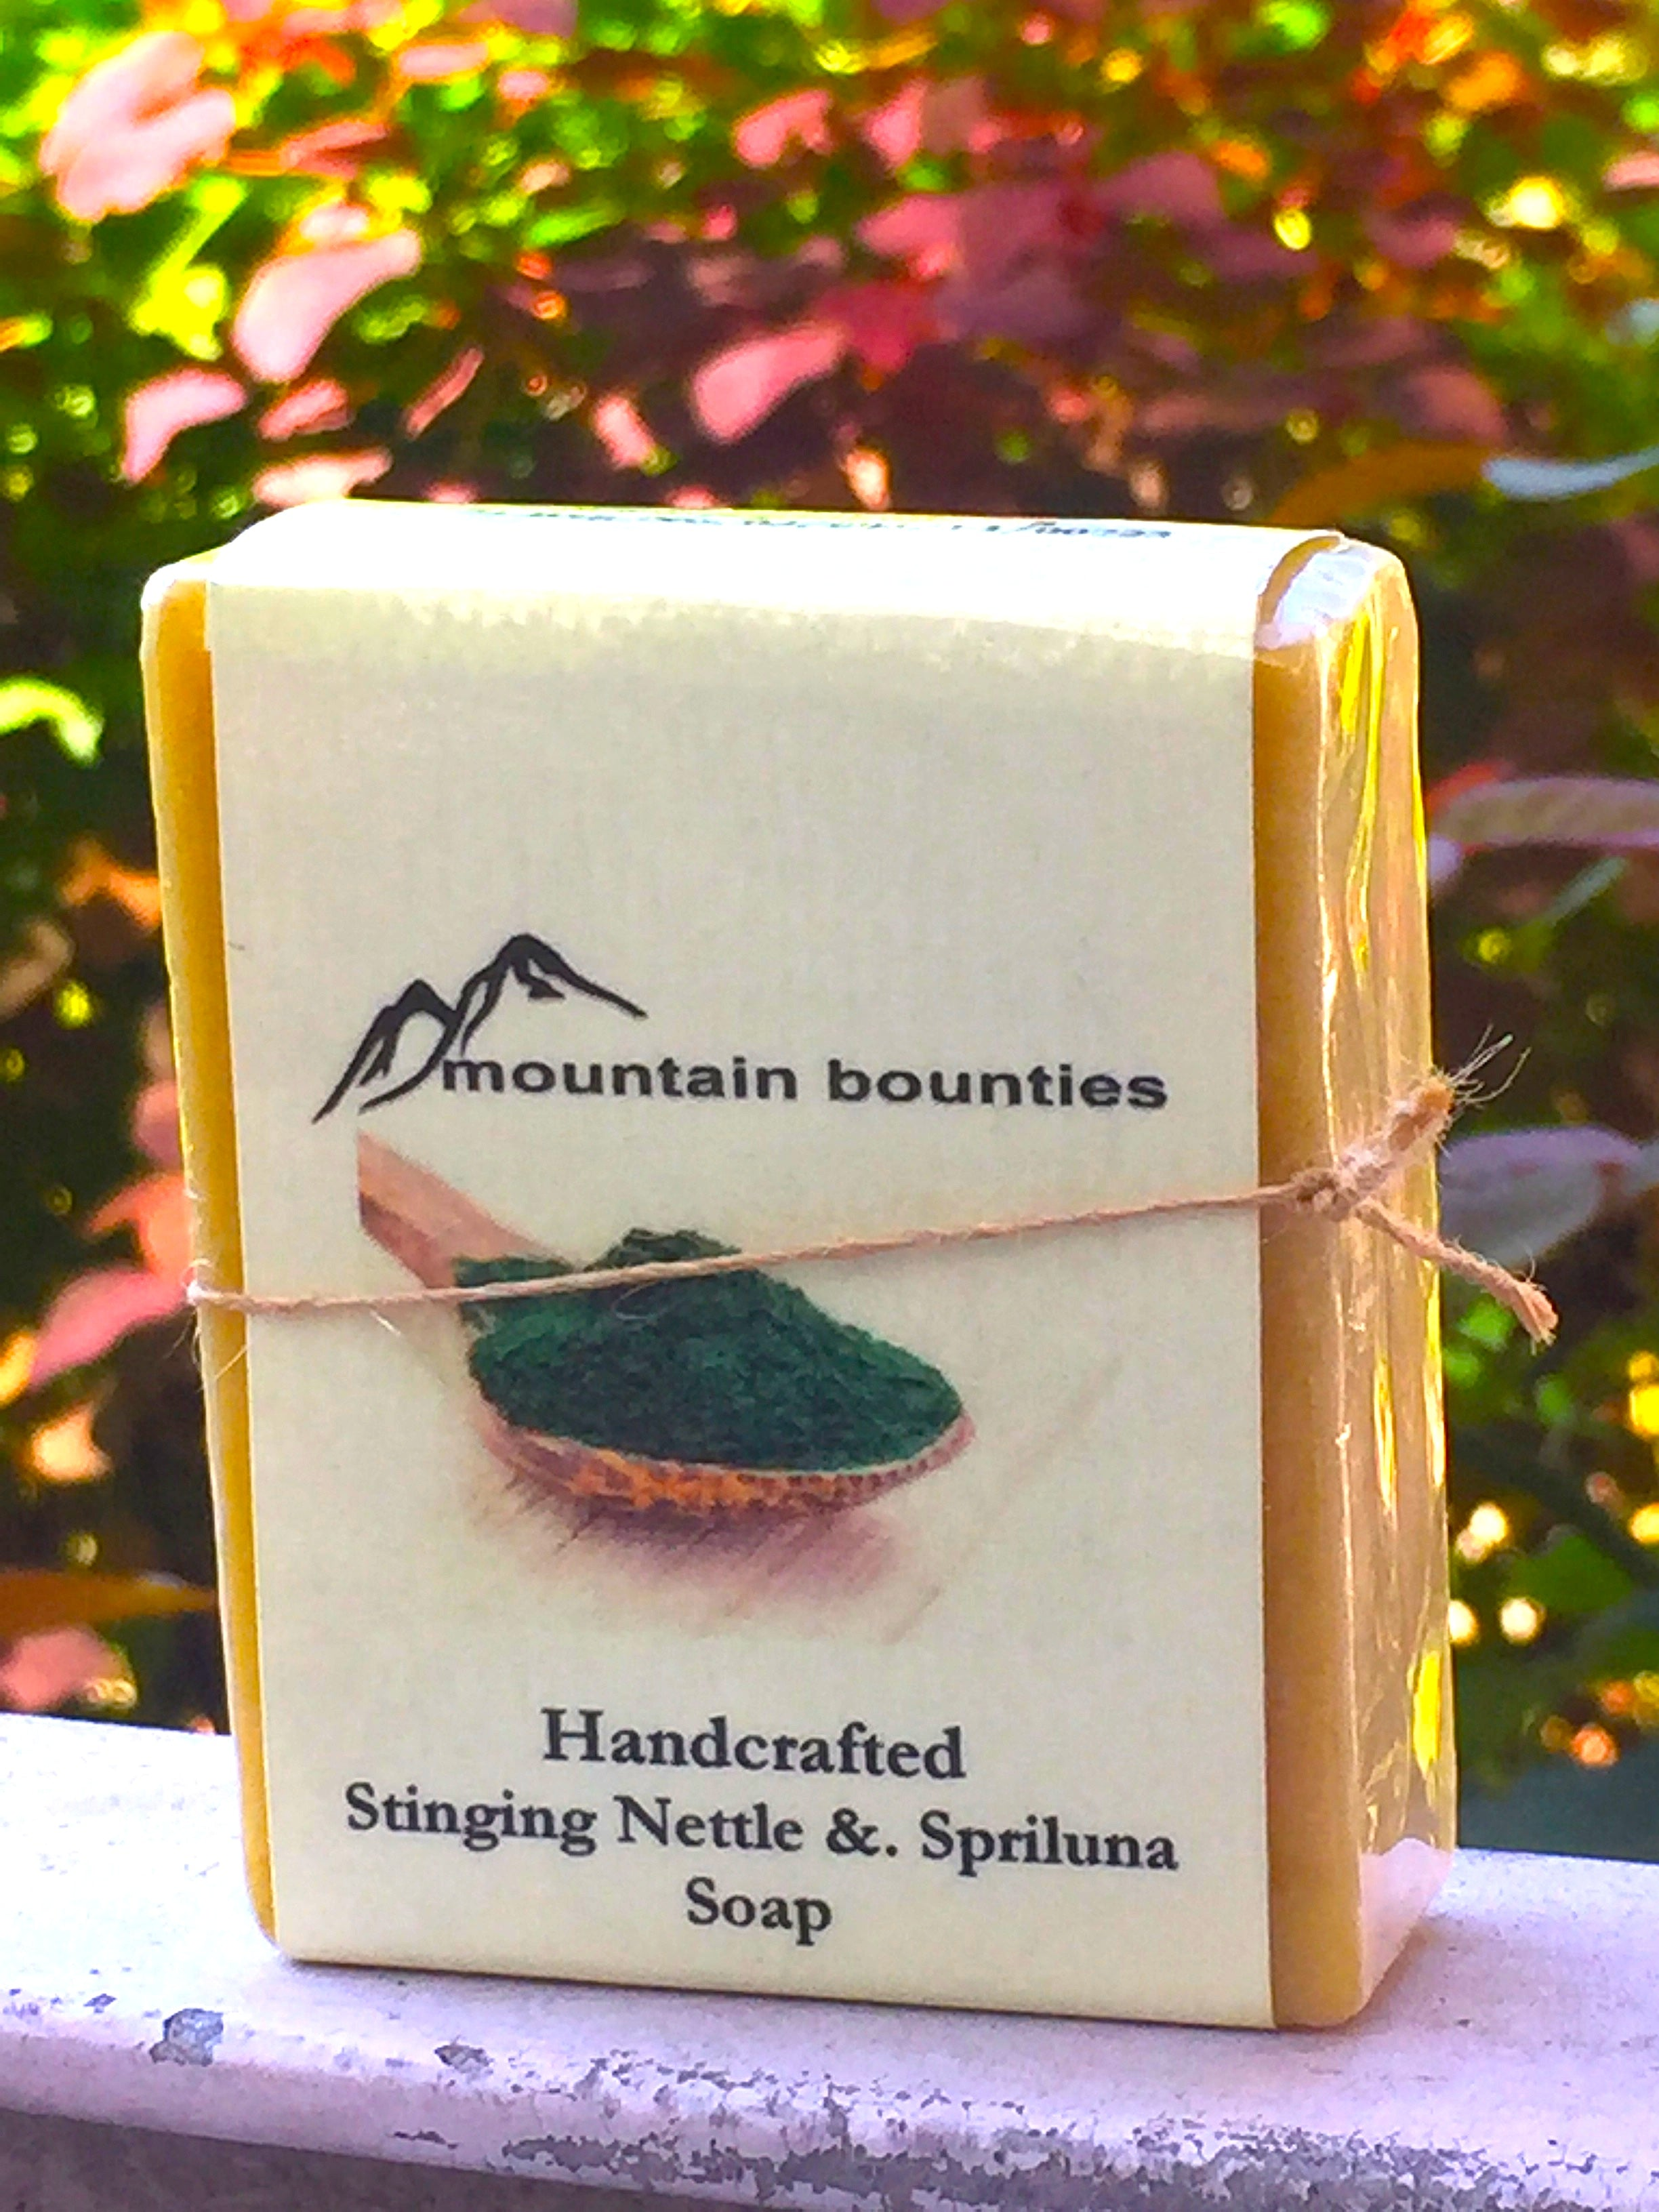 Handcrafted Herbal Stinging Nettle & Spirulina Soap